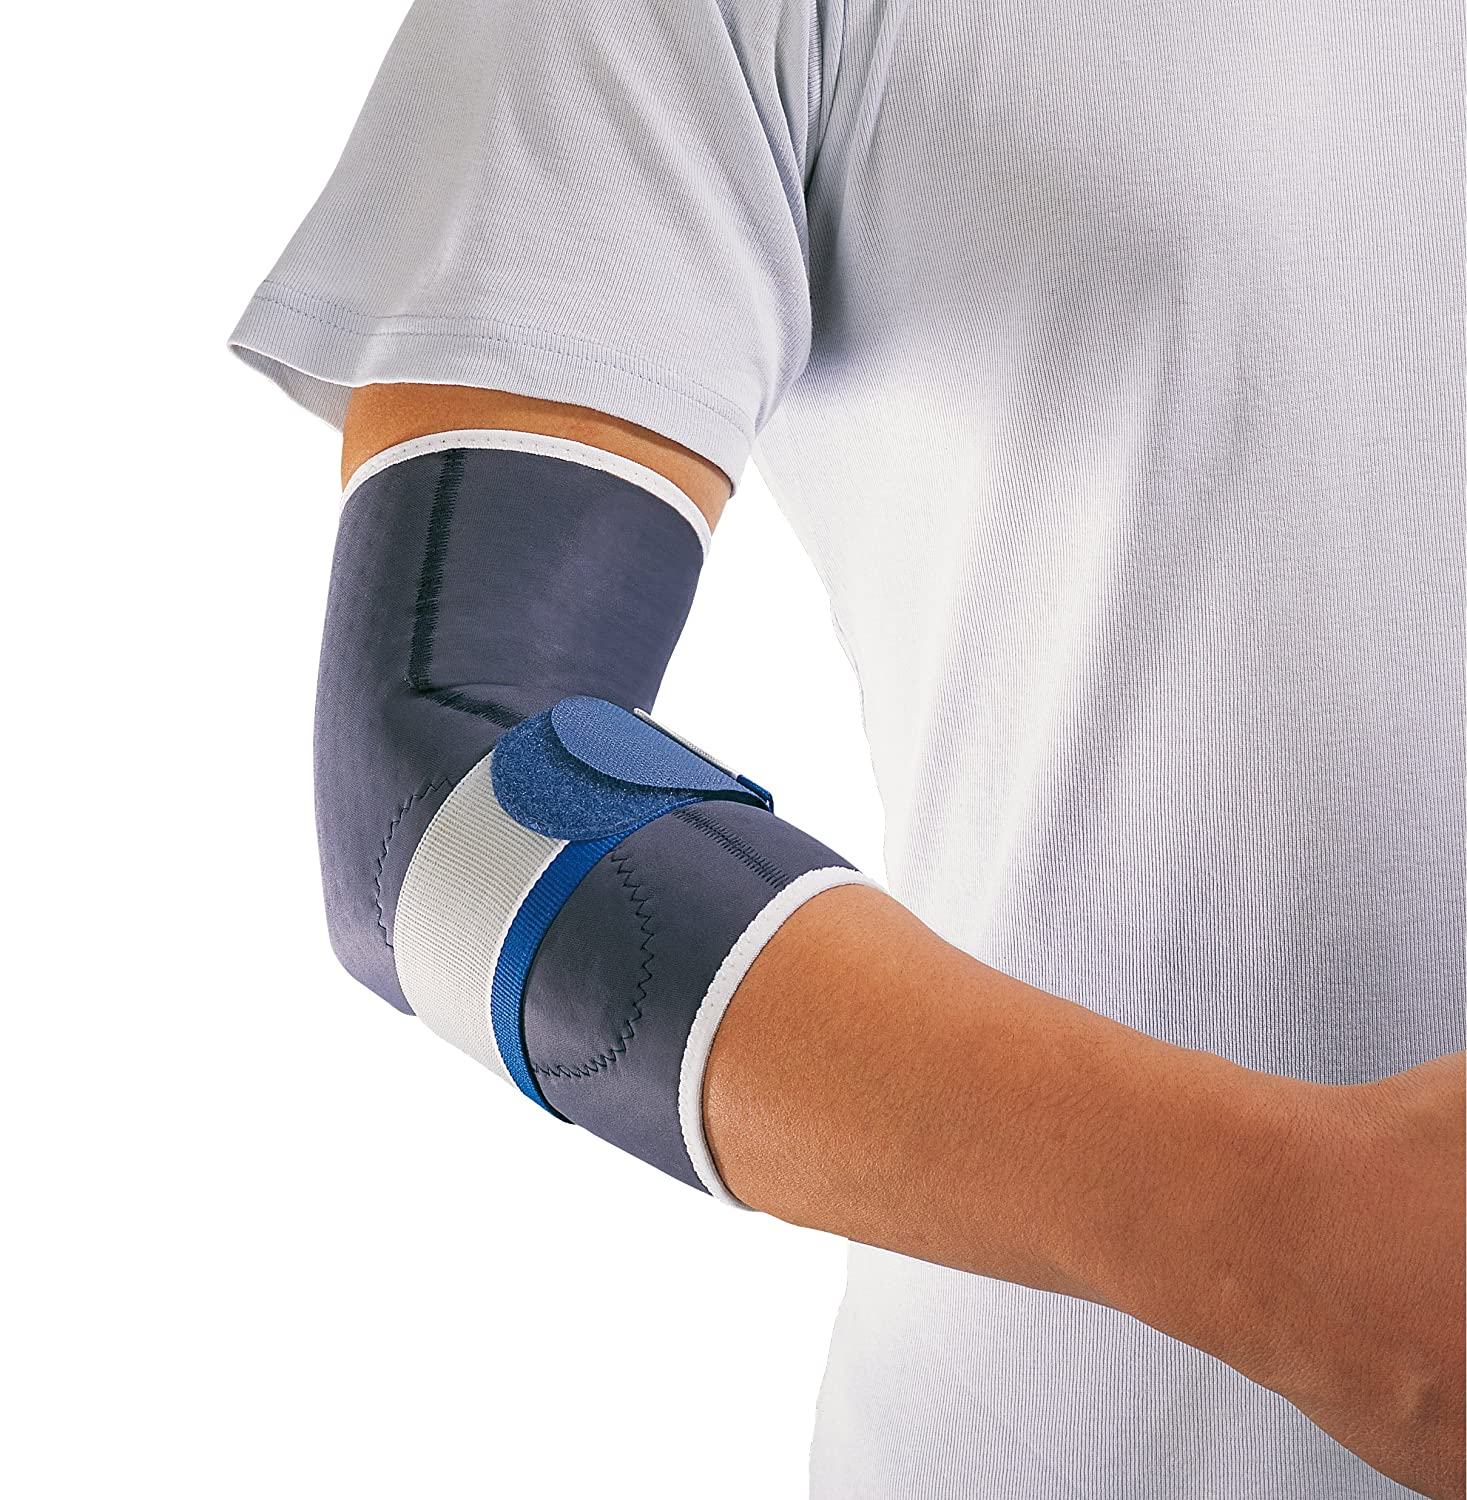 0d33c2ac8a Thuasne Sport Unisex Adults' Elbow Strain Support: Amazon.co.uk: Sports &  Outdoors